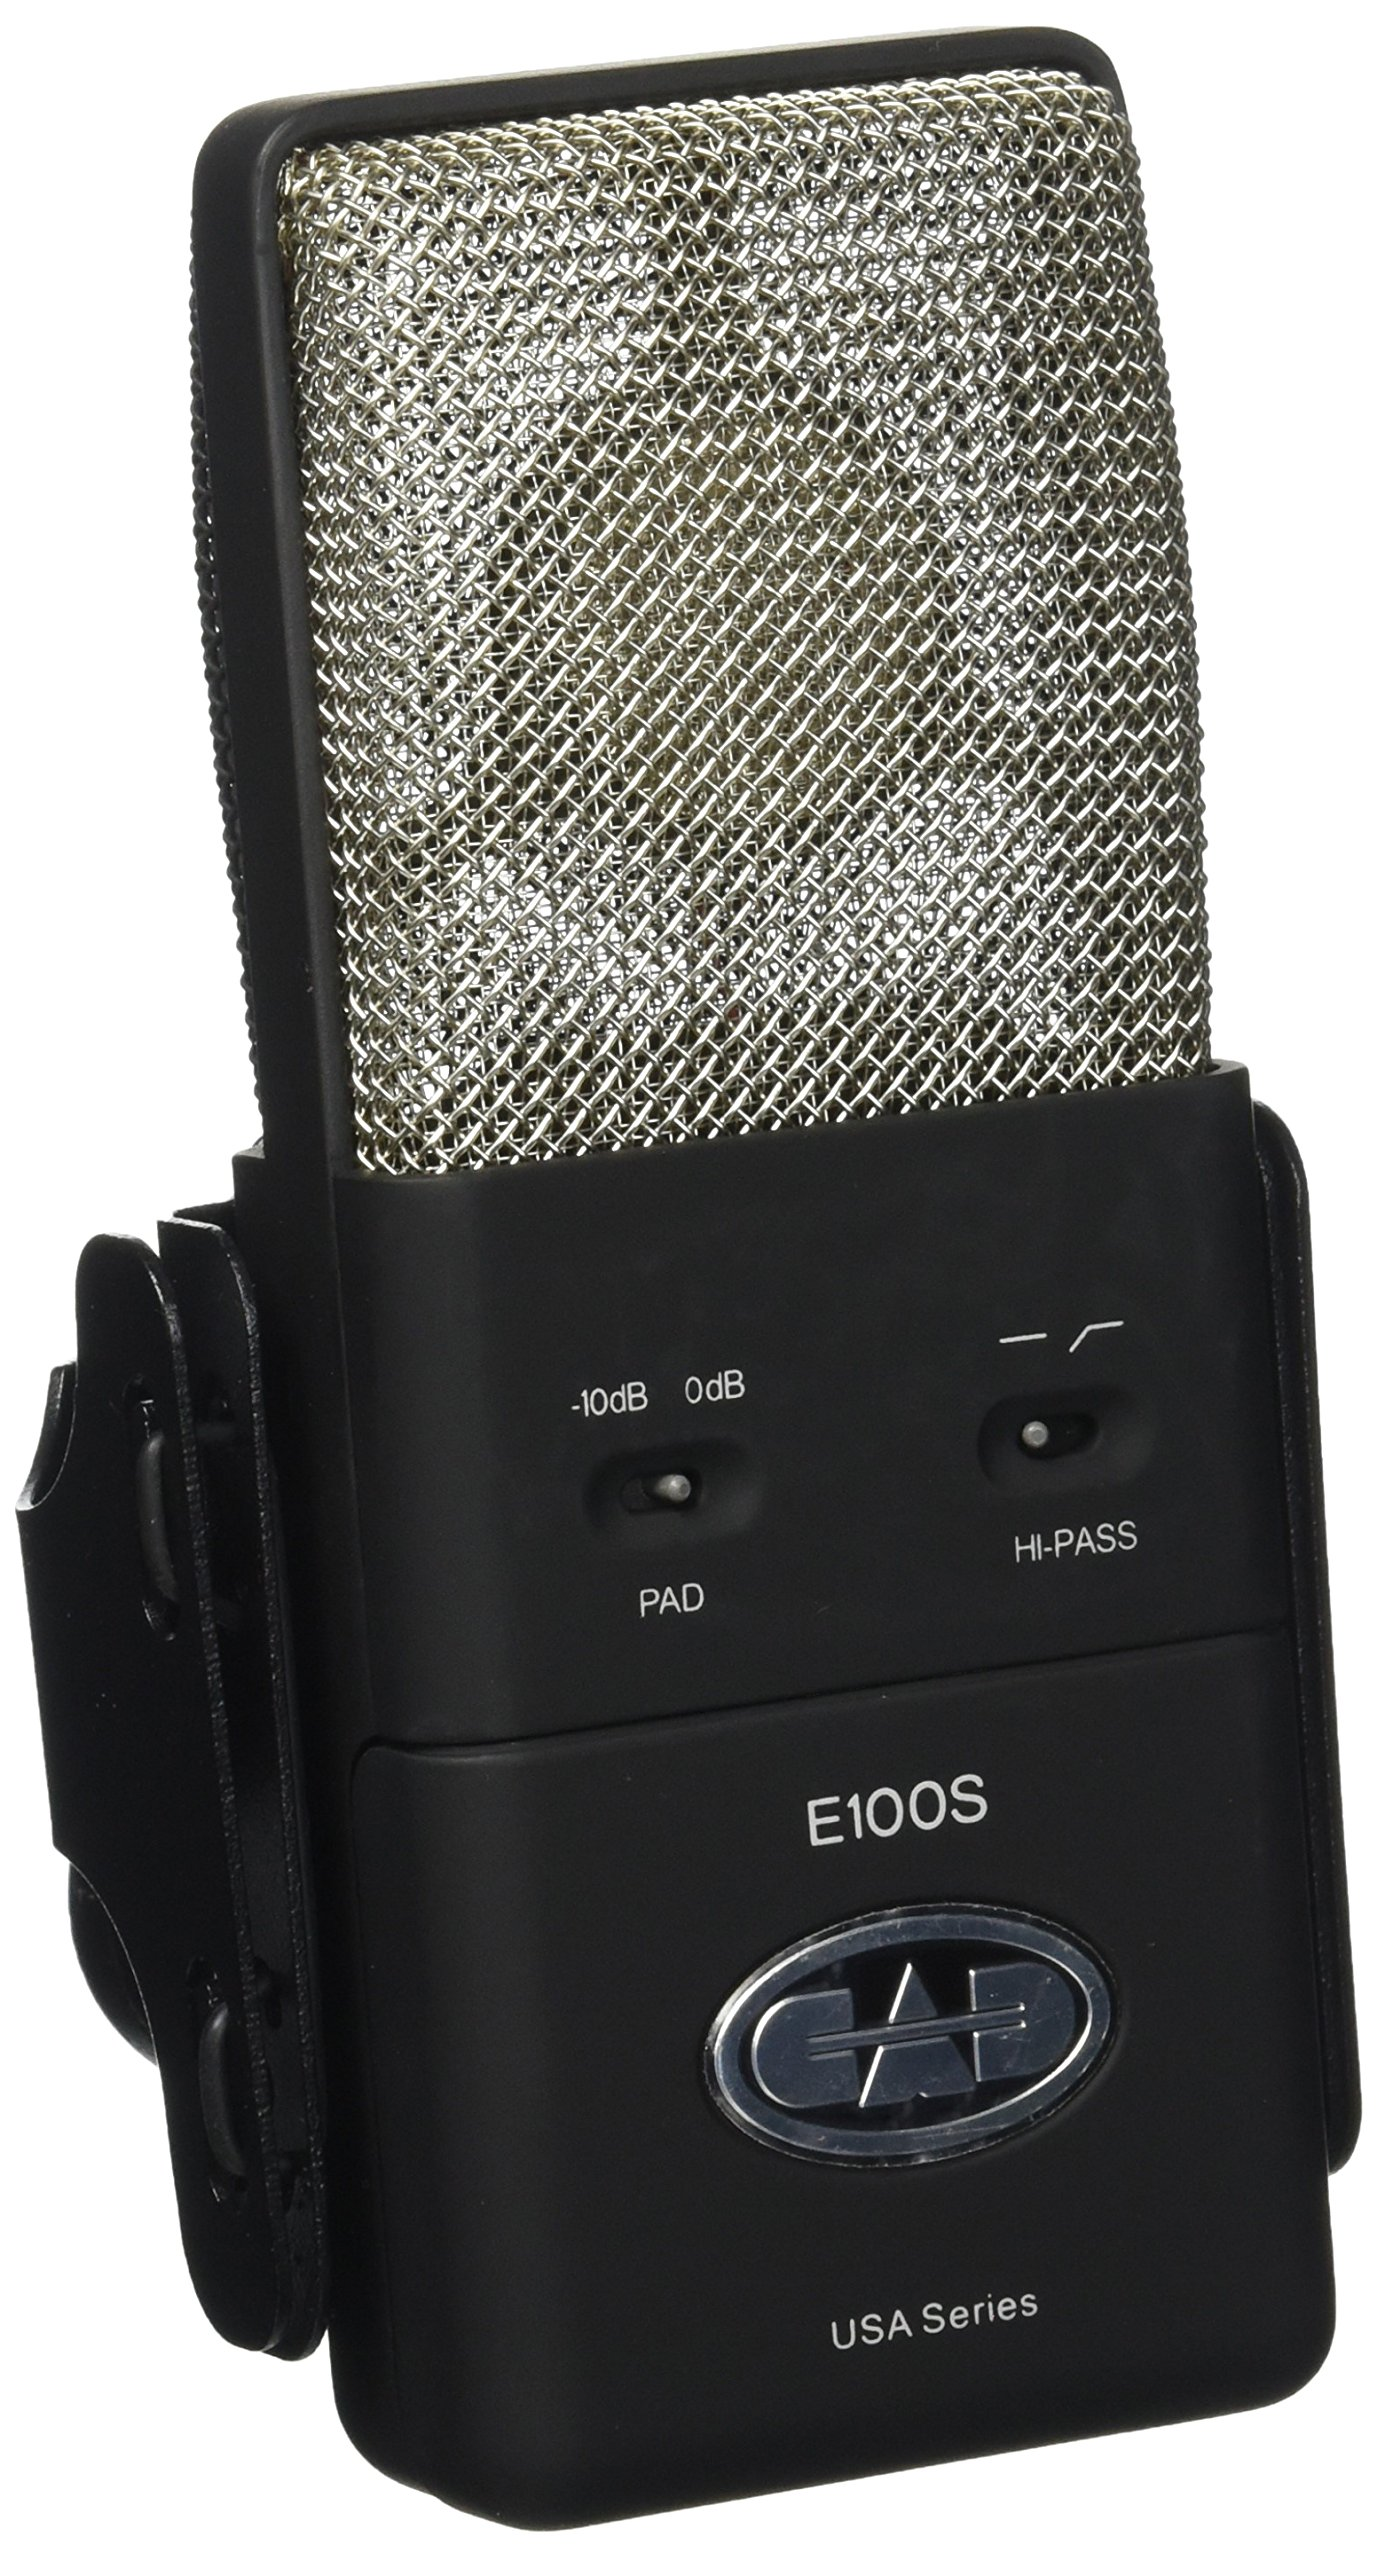 CAD Audio Equitek E100S Large Diaphragm Supercardioid Condenser Microphone by CAD